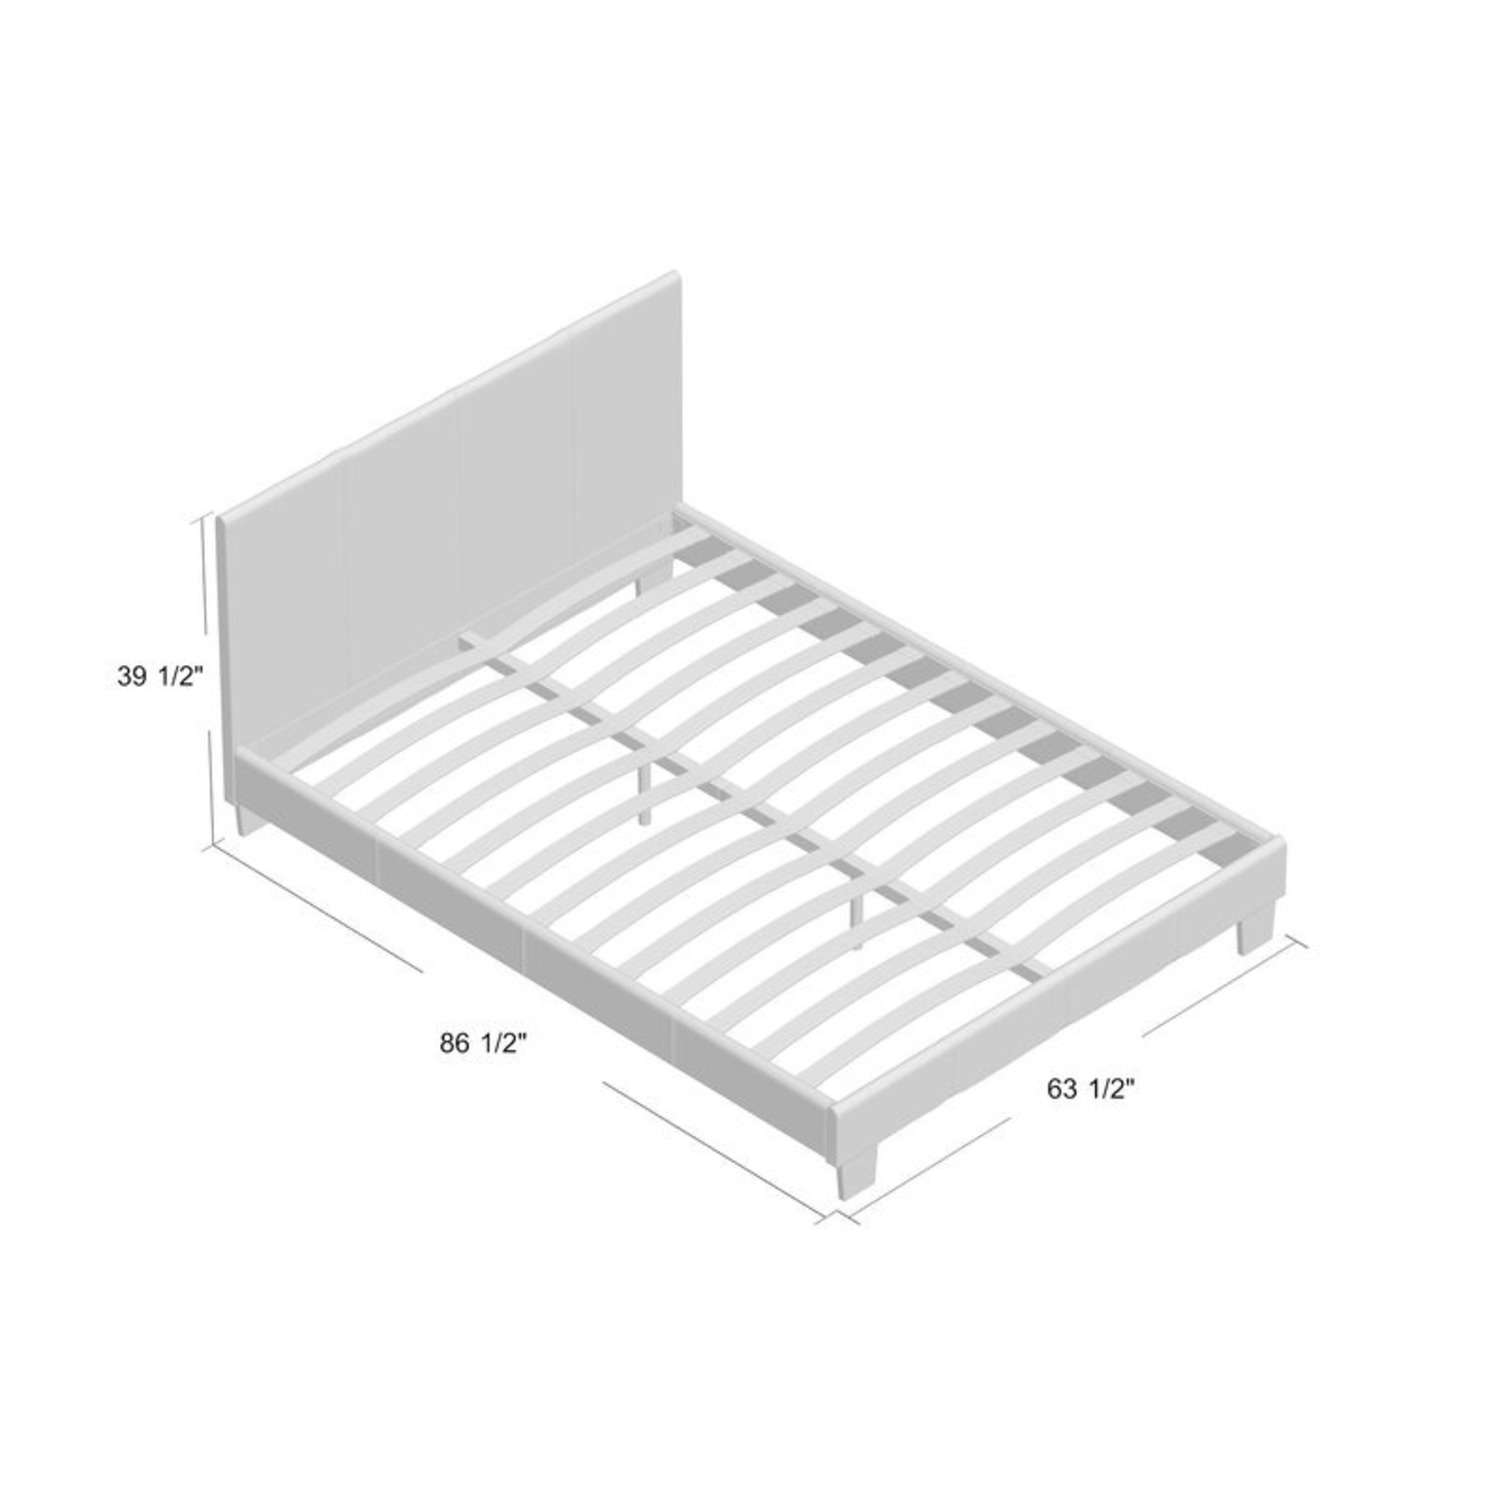 Queen Brown Leather Platform Bed with Slats - image-2